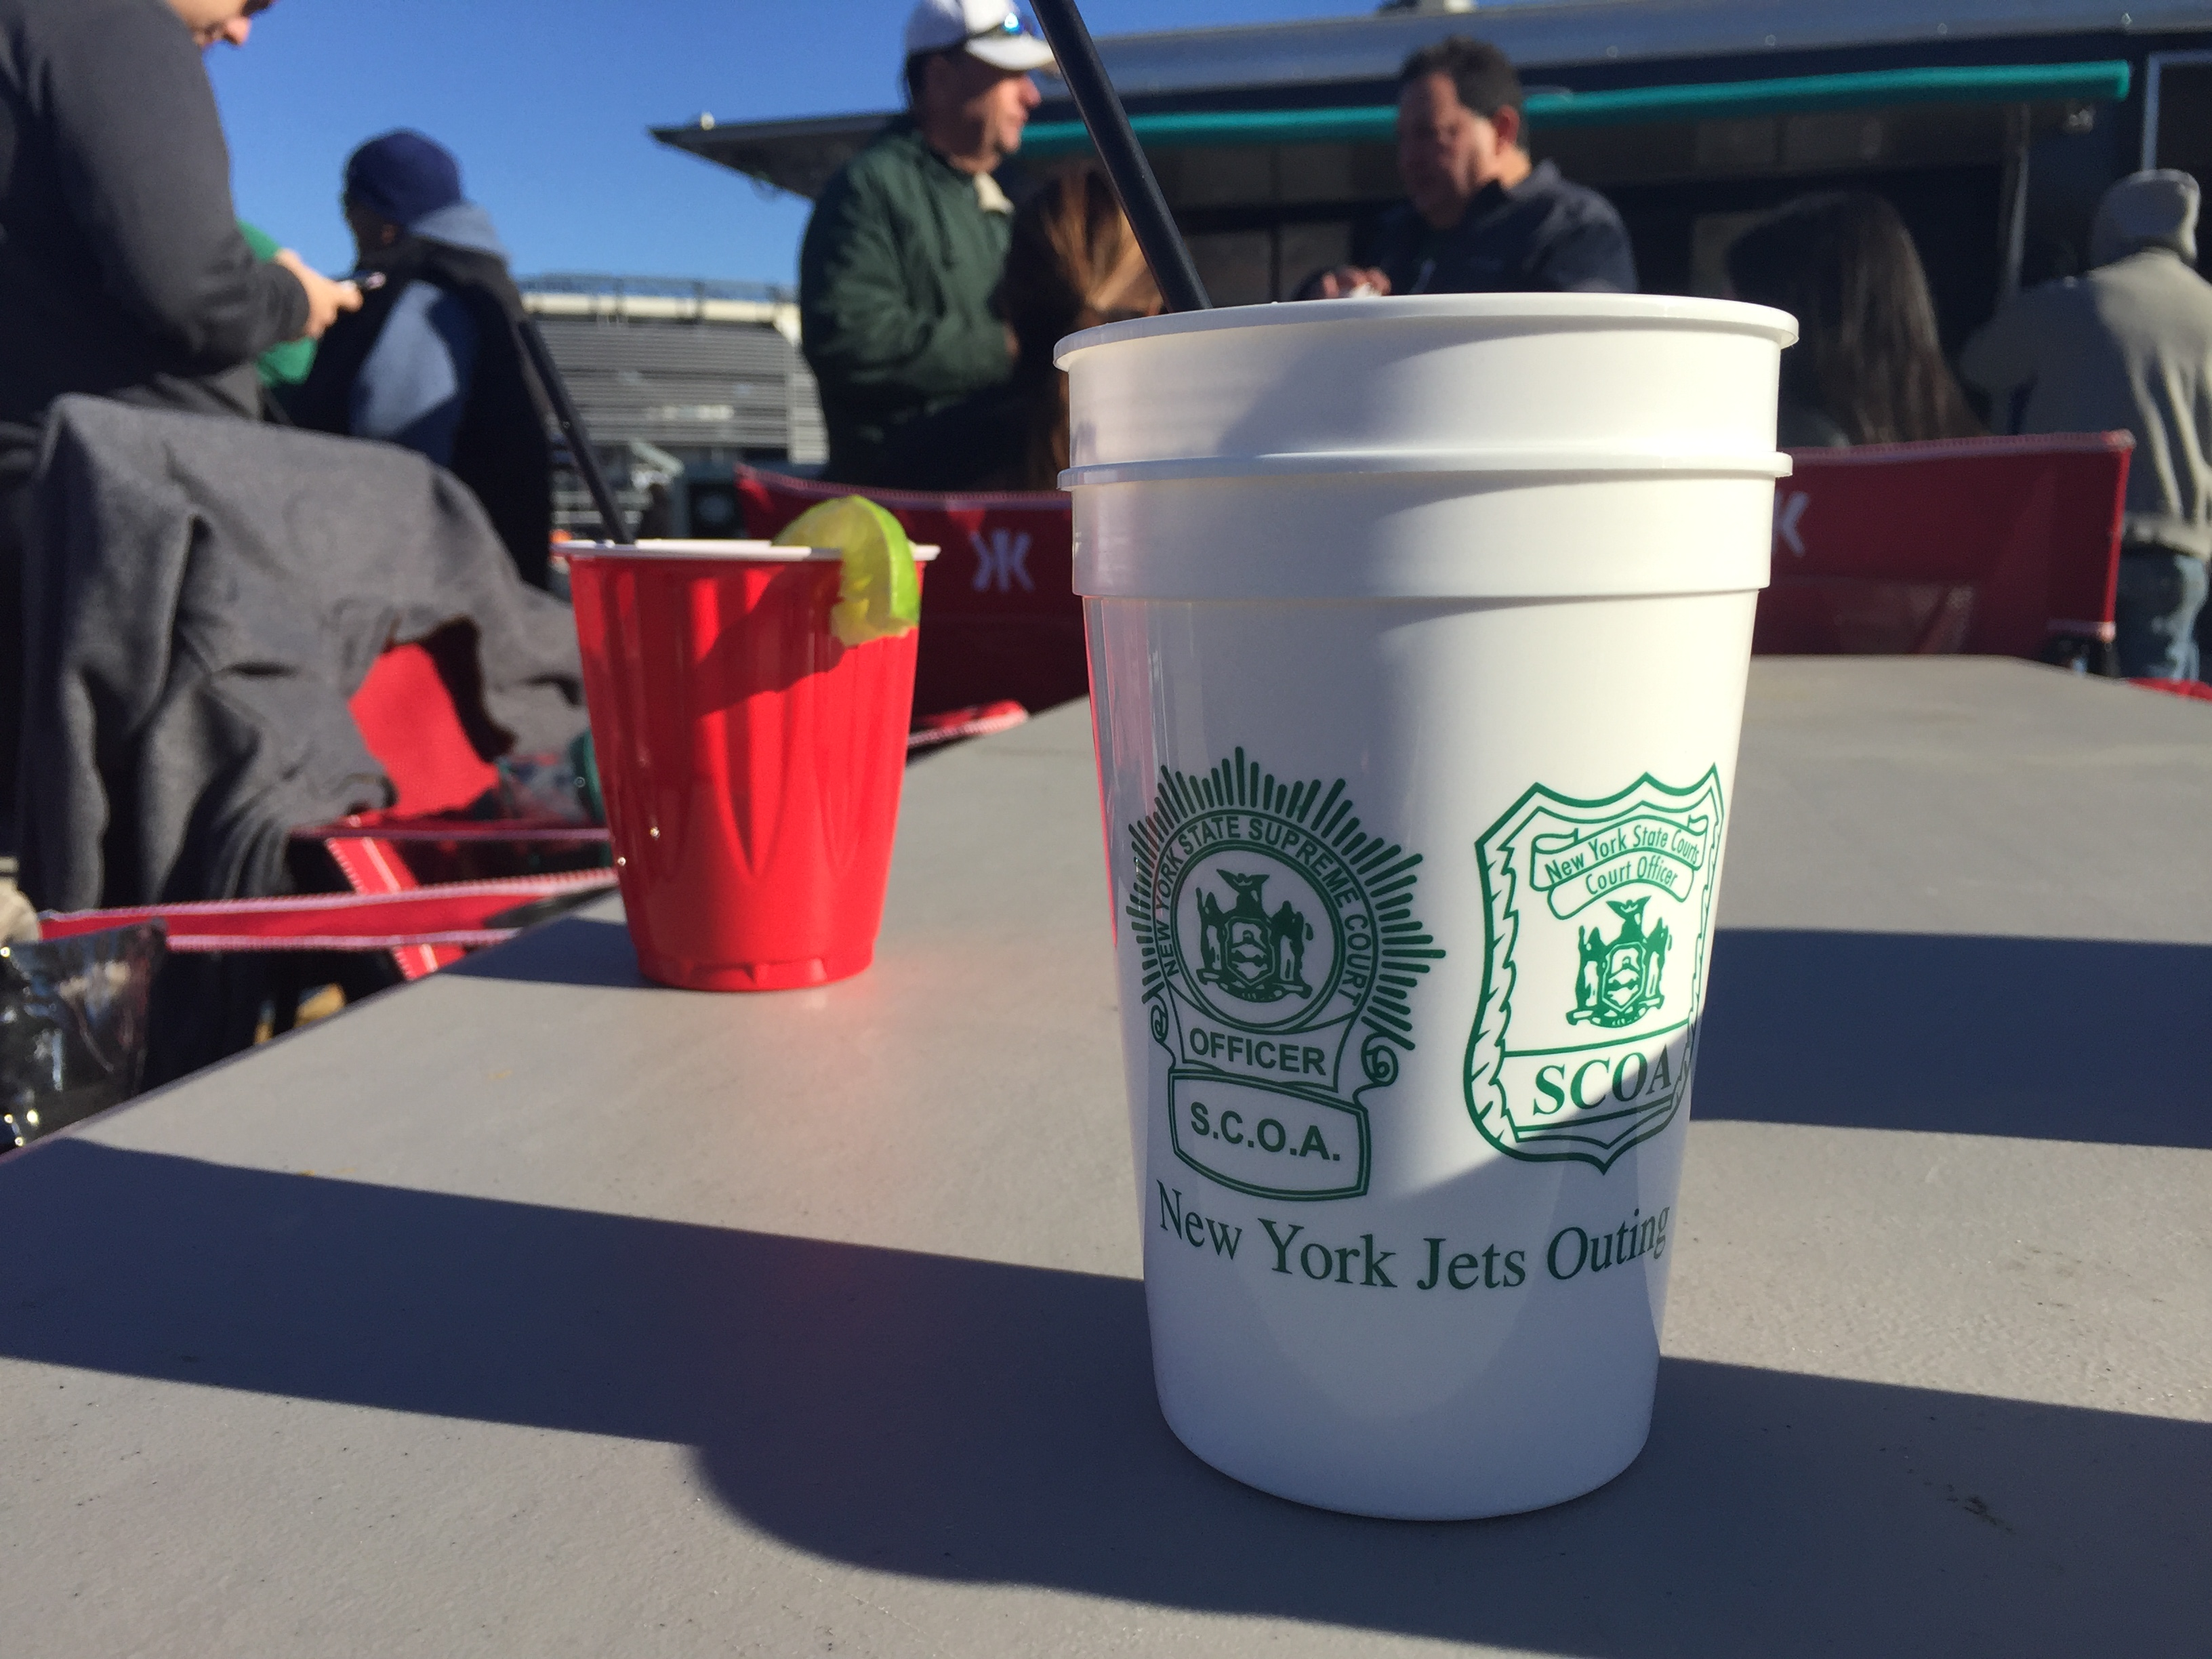 NY Jets Outing41